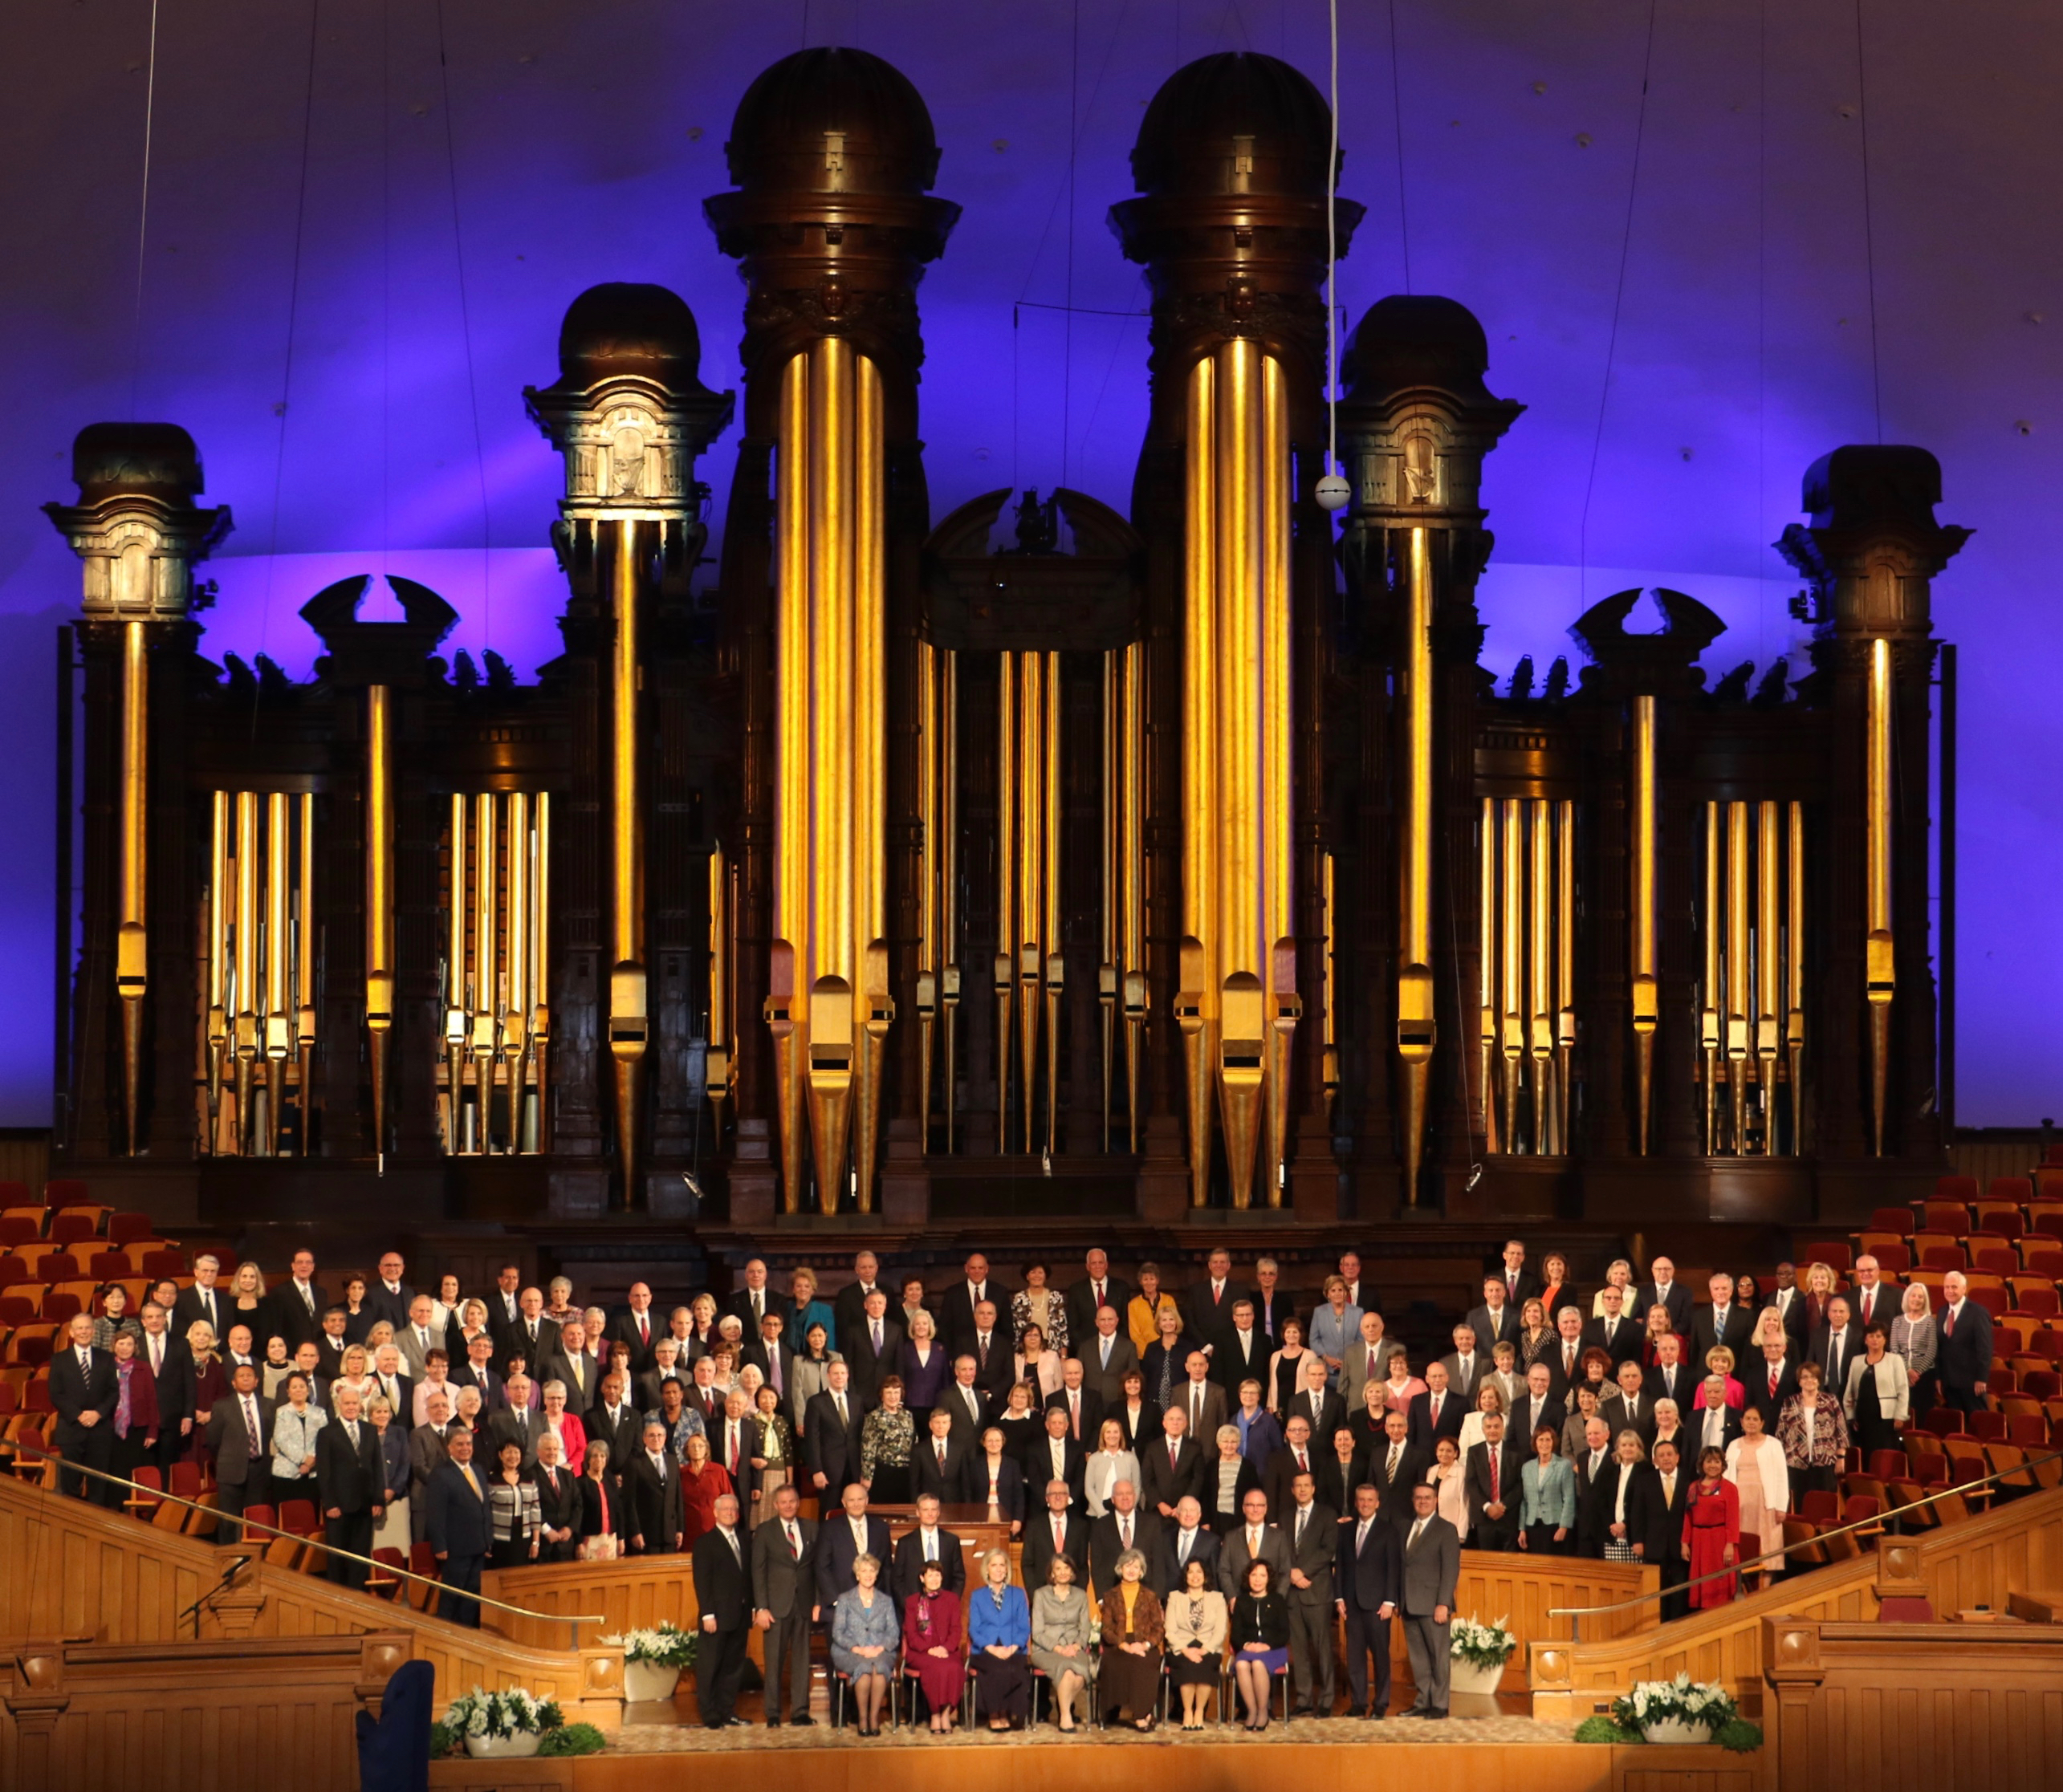 Joined by select members of the Quorum of the Twelve Apostles, General Authority Seventies, Temple Department leaders and their wives, the 69 couples attending the 2018 Seminar for New Temple Presidents and Matrons gather for a group photo in the Salt Lake Tabernacle.